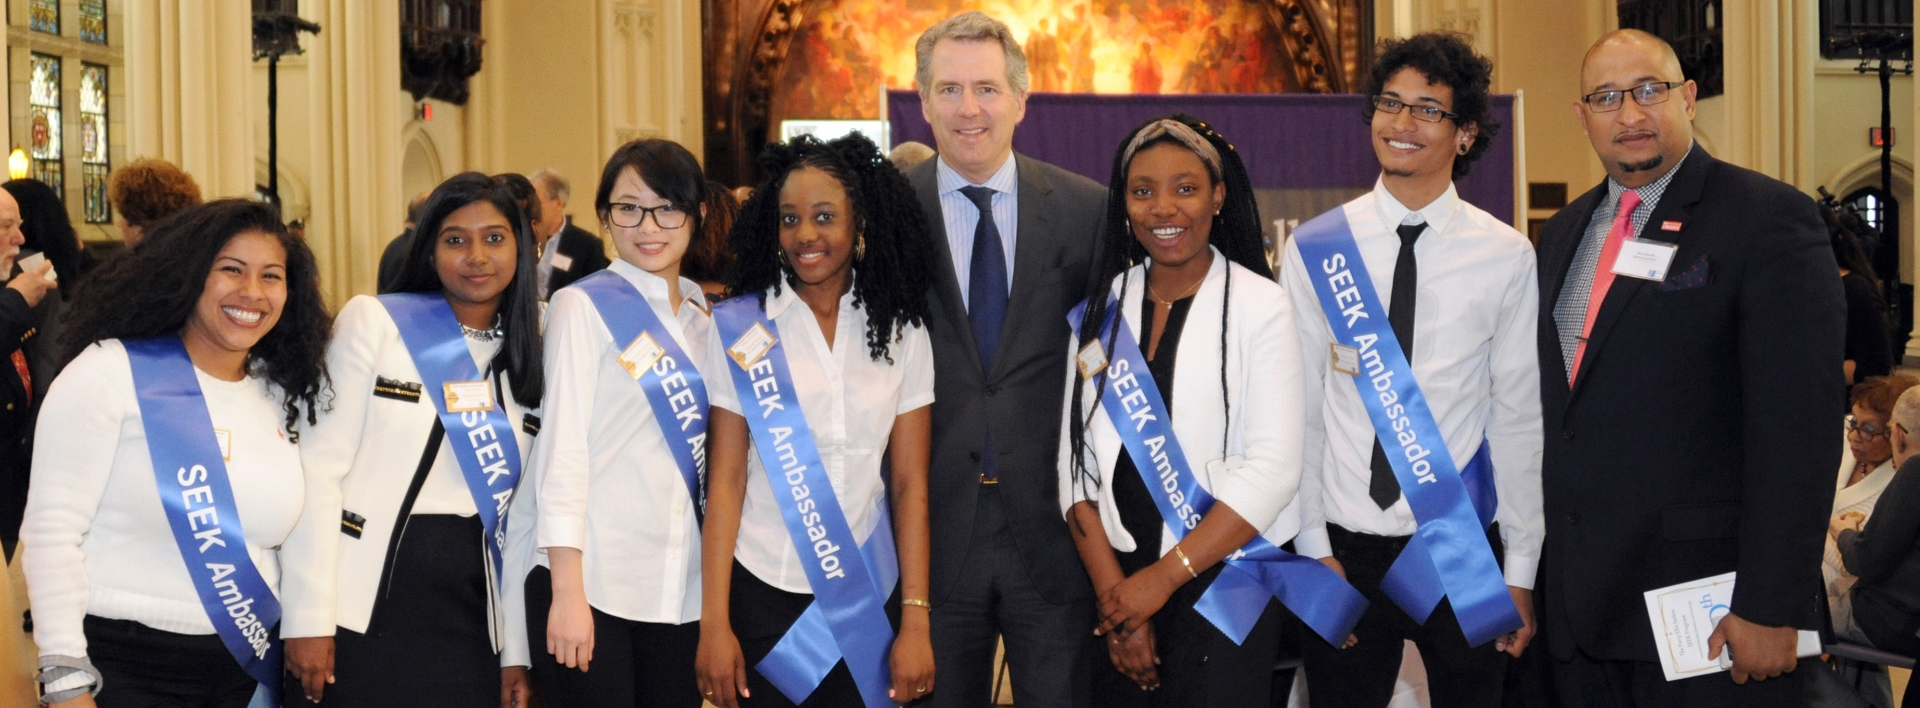 CUNY SEEK (Search for Education, Elevation, and Knowledge) 50th Anniversary Awards Program, Shepard Hall, City College of New York. In photo, Chancellor James B. Milliken (c) and SEEK alumnus Henry Garrido (r) appear with SEEK Ambassadors.